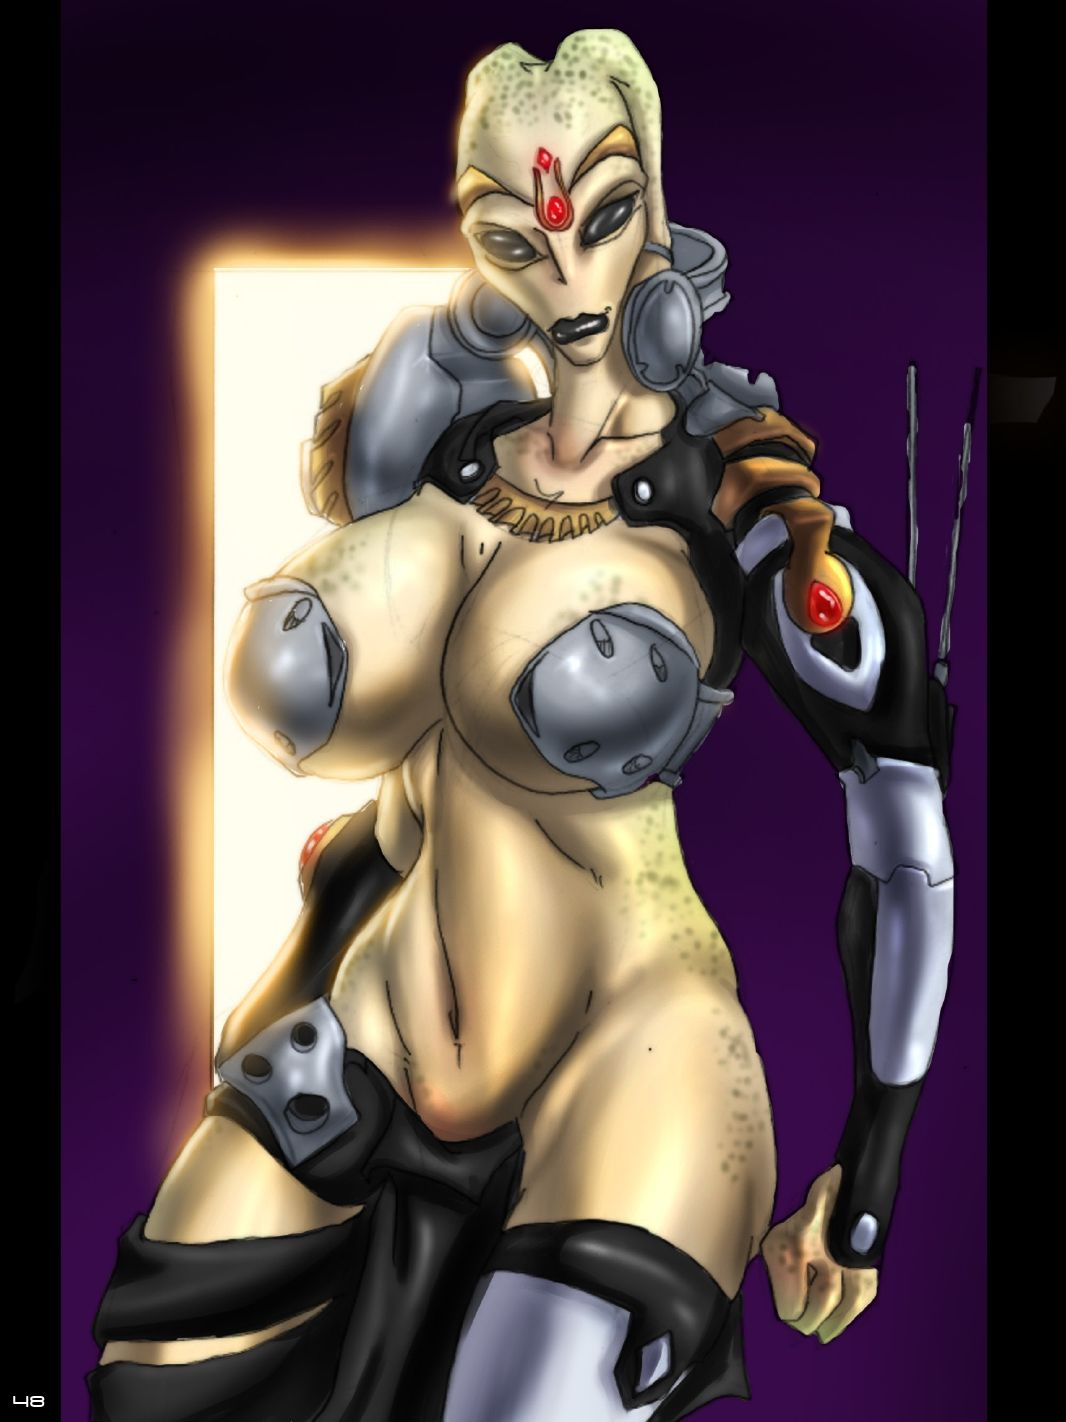 FORNAX_The_galaxys_finest_xenophilia_(Mass_Effect) comix_58083.jpg